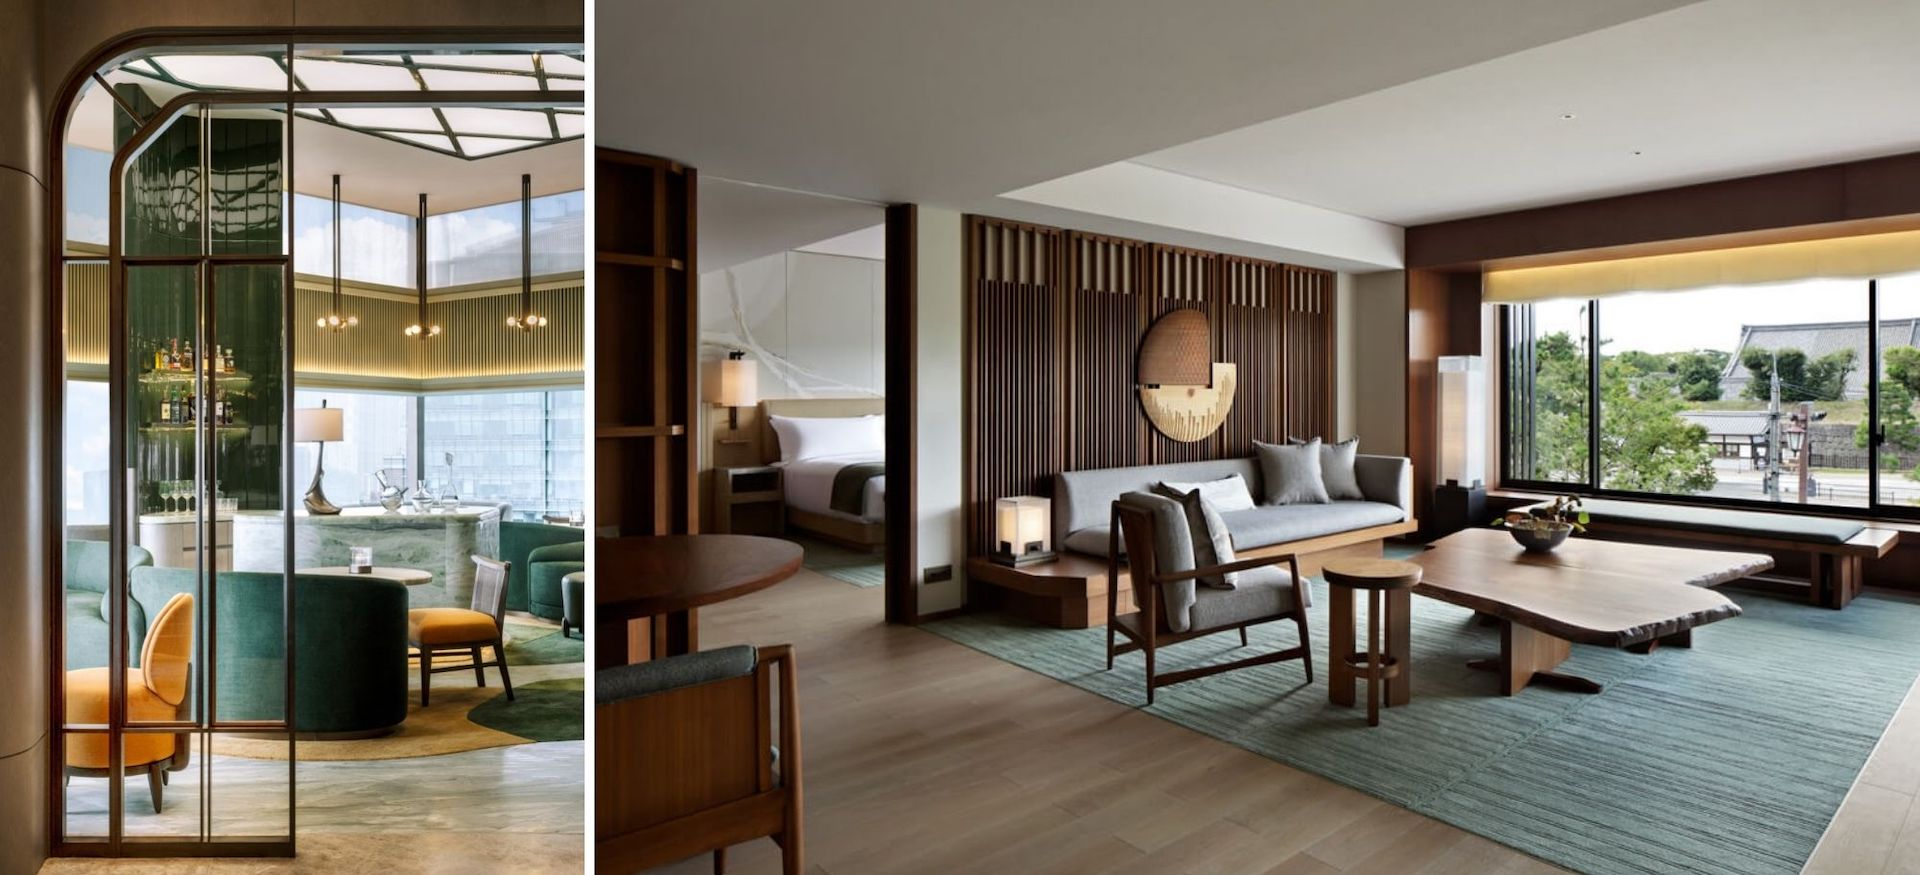 Interiors by André Fu: The Upper House in  Hong Kong and Hotel The Mitsui in Kyoto. Photos © André Fu Studio